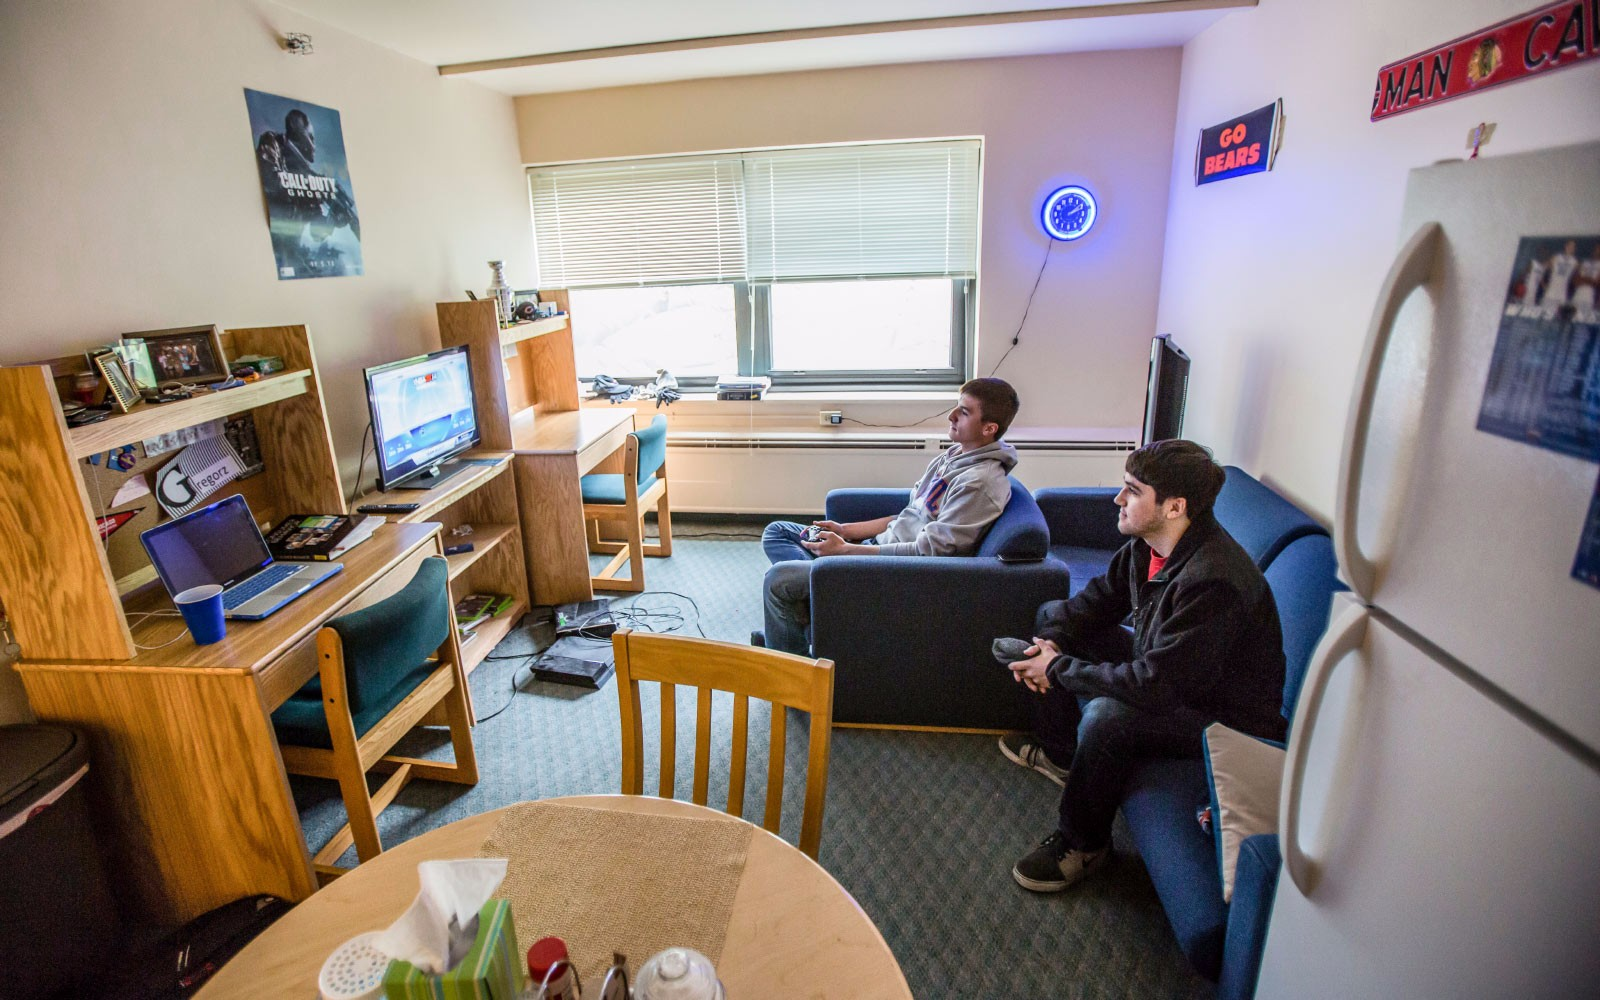 Students talking in a dorm room.